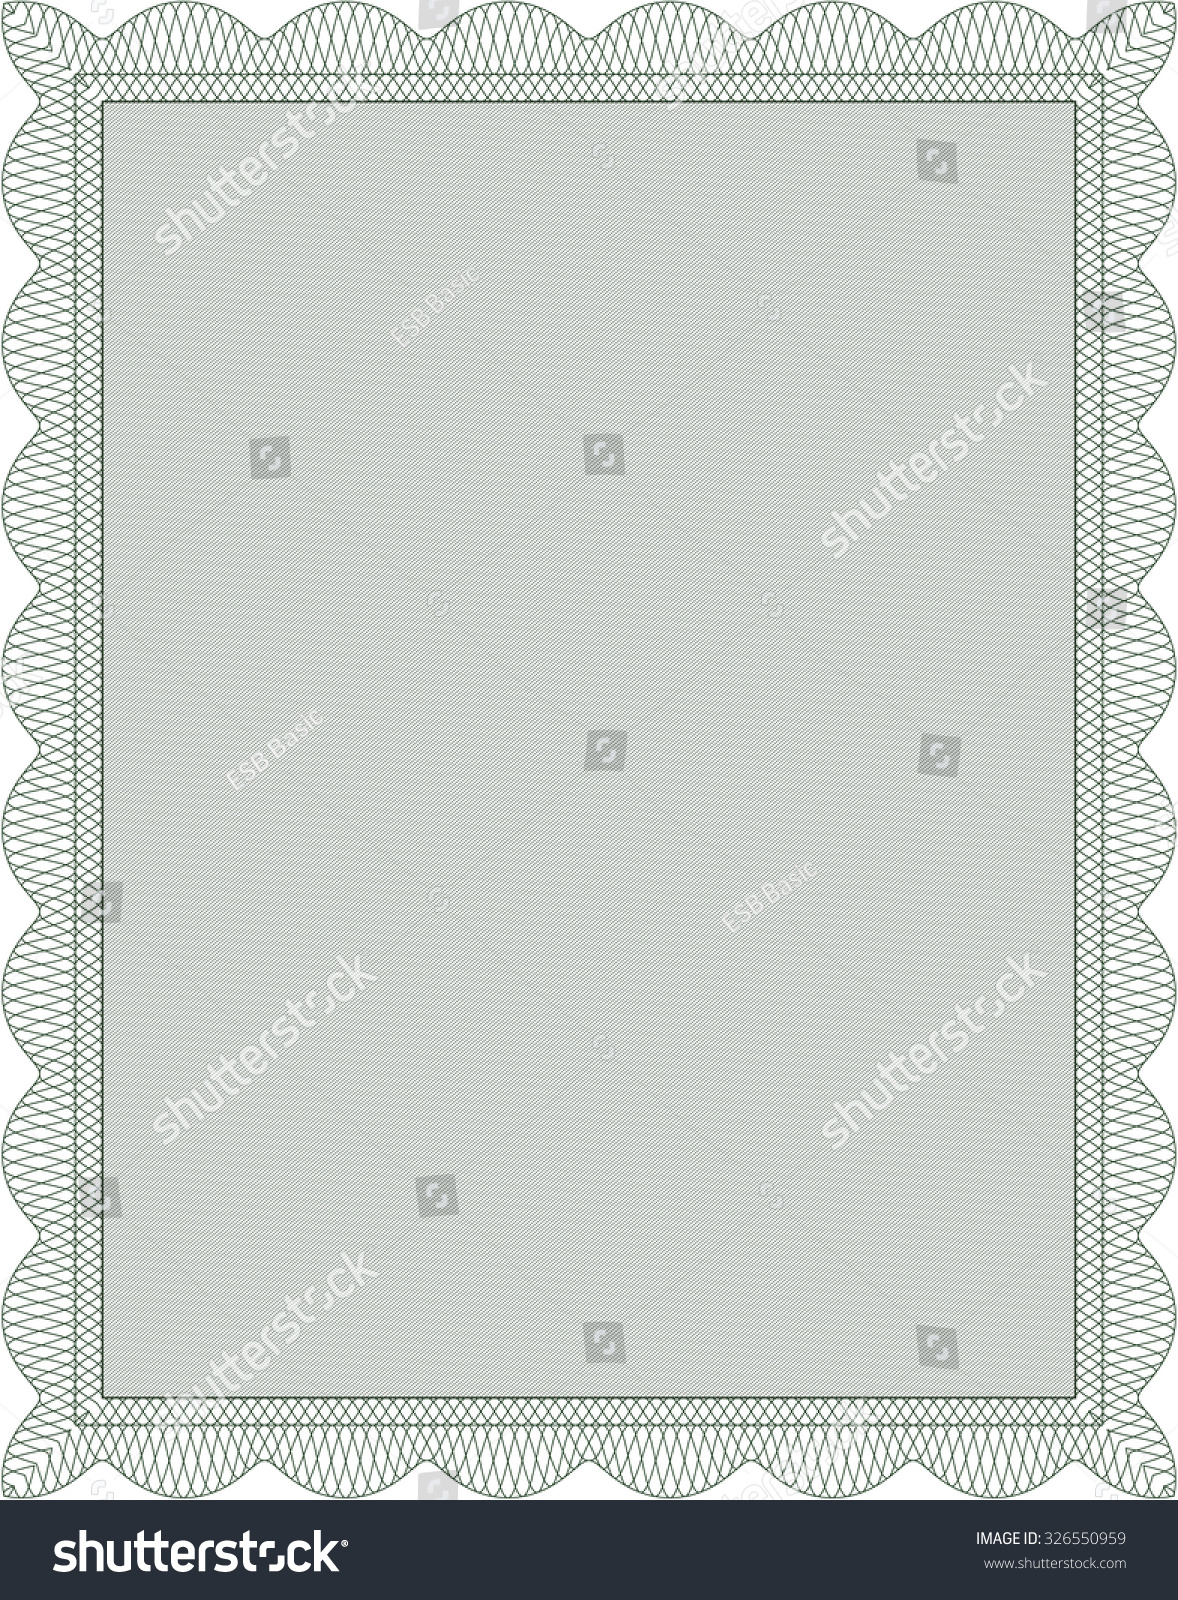 Stock share certificate template rent lined paper print out certificate quality certificate template report format template word stock vector diploma template or certificate template with yadclub Images